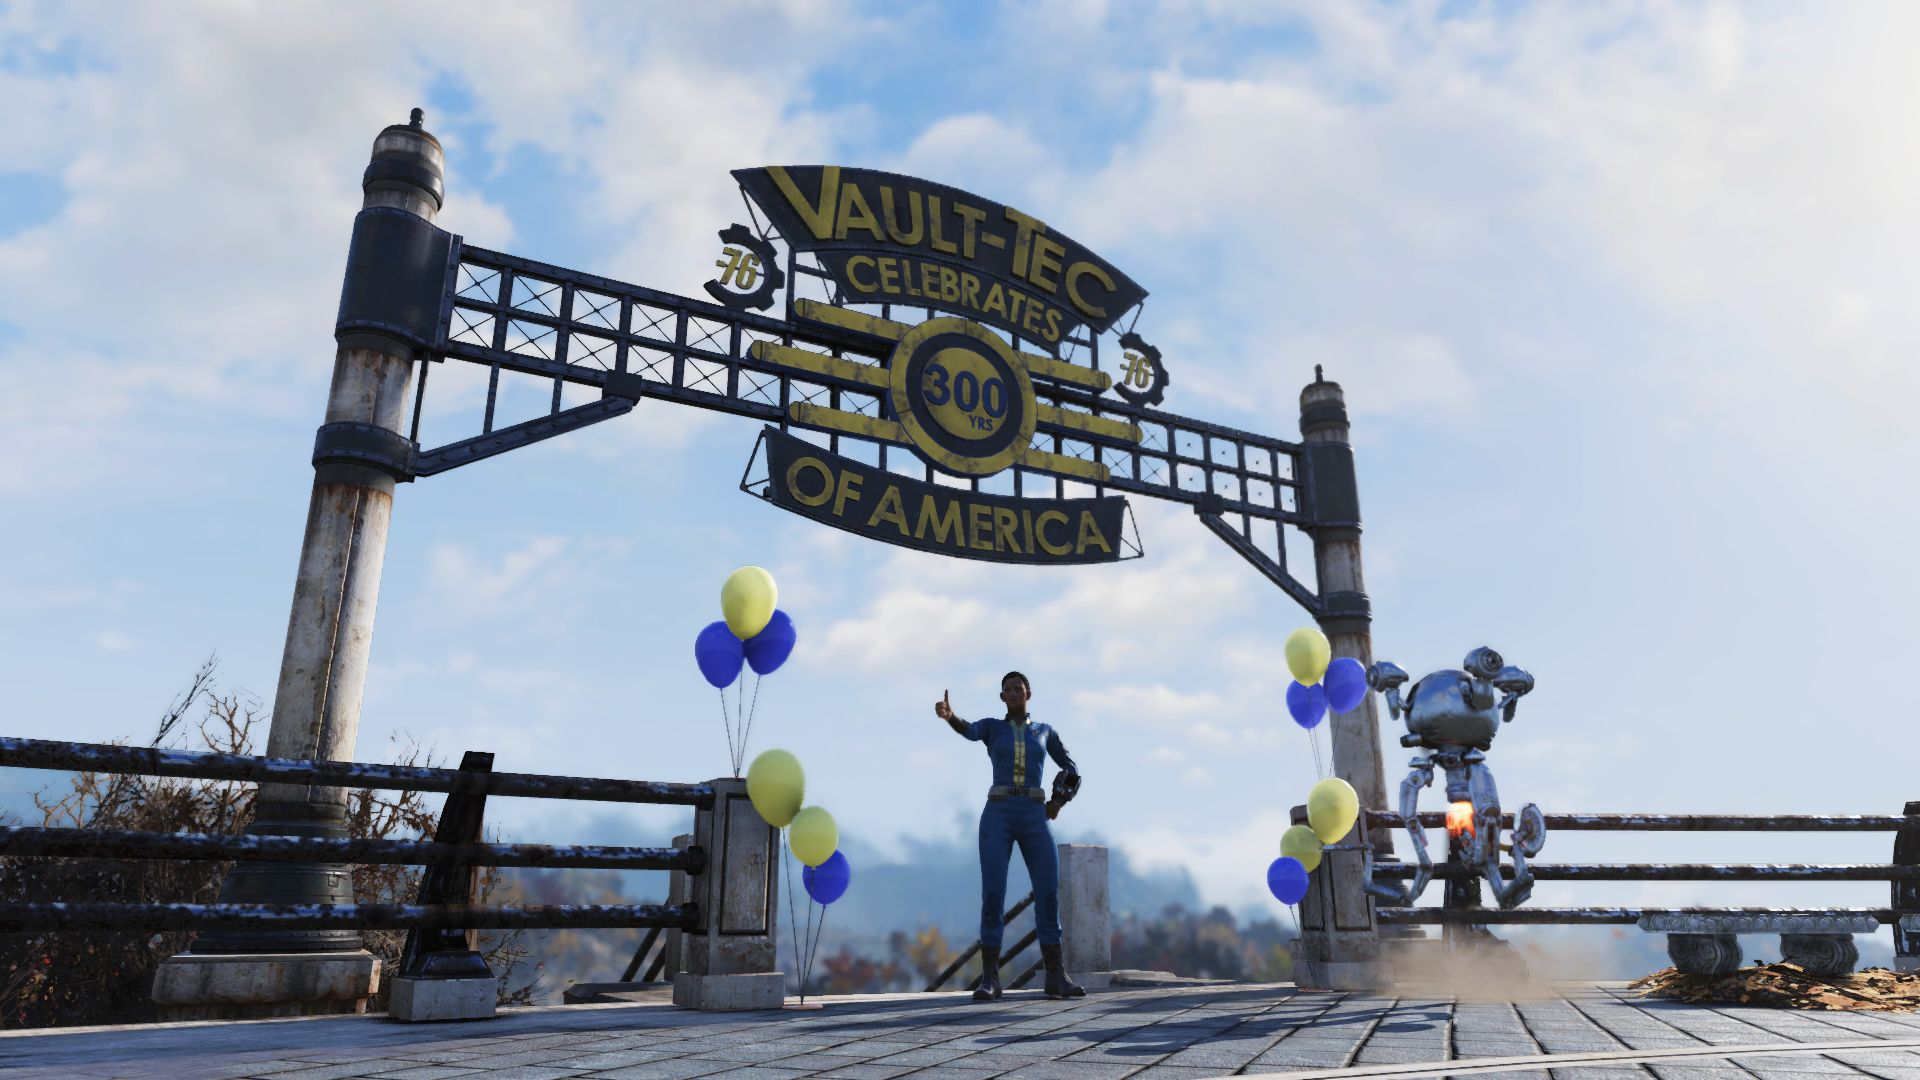 A player in a blue and yellow Vault-Tec jumpsuit stands giving the thumbs up under a large sign reading 'Valt-Tec Celebrates 300 Years of America. There are some yellow and blue balloons either side of them.